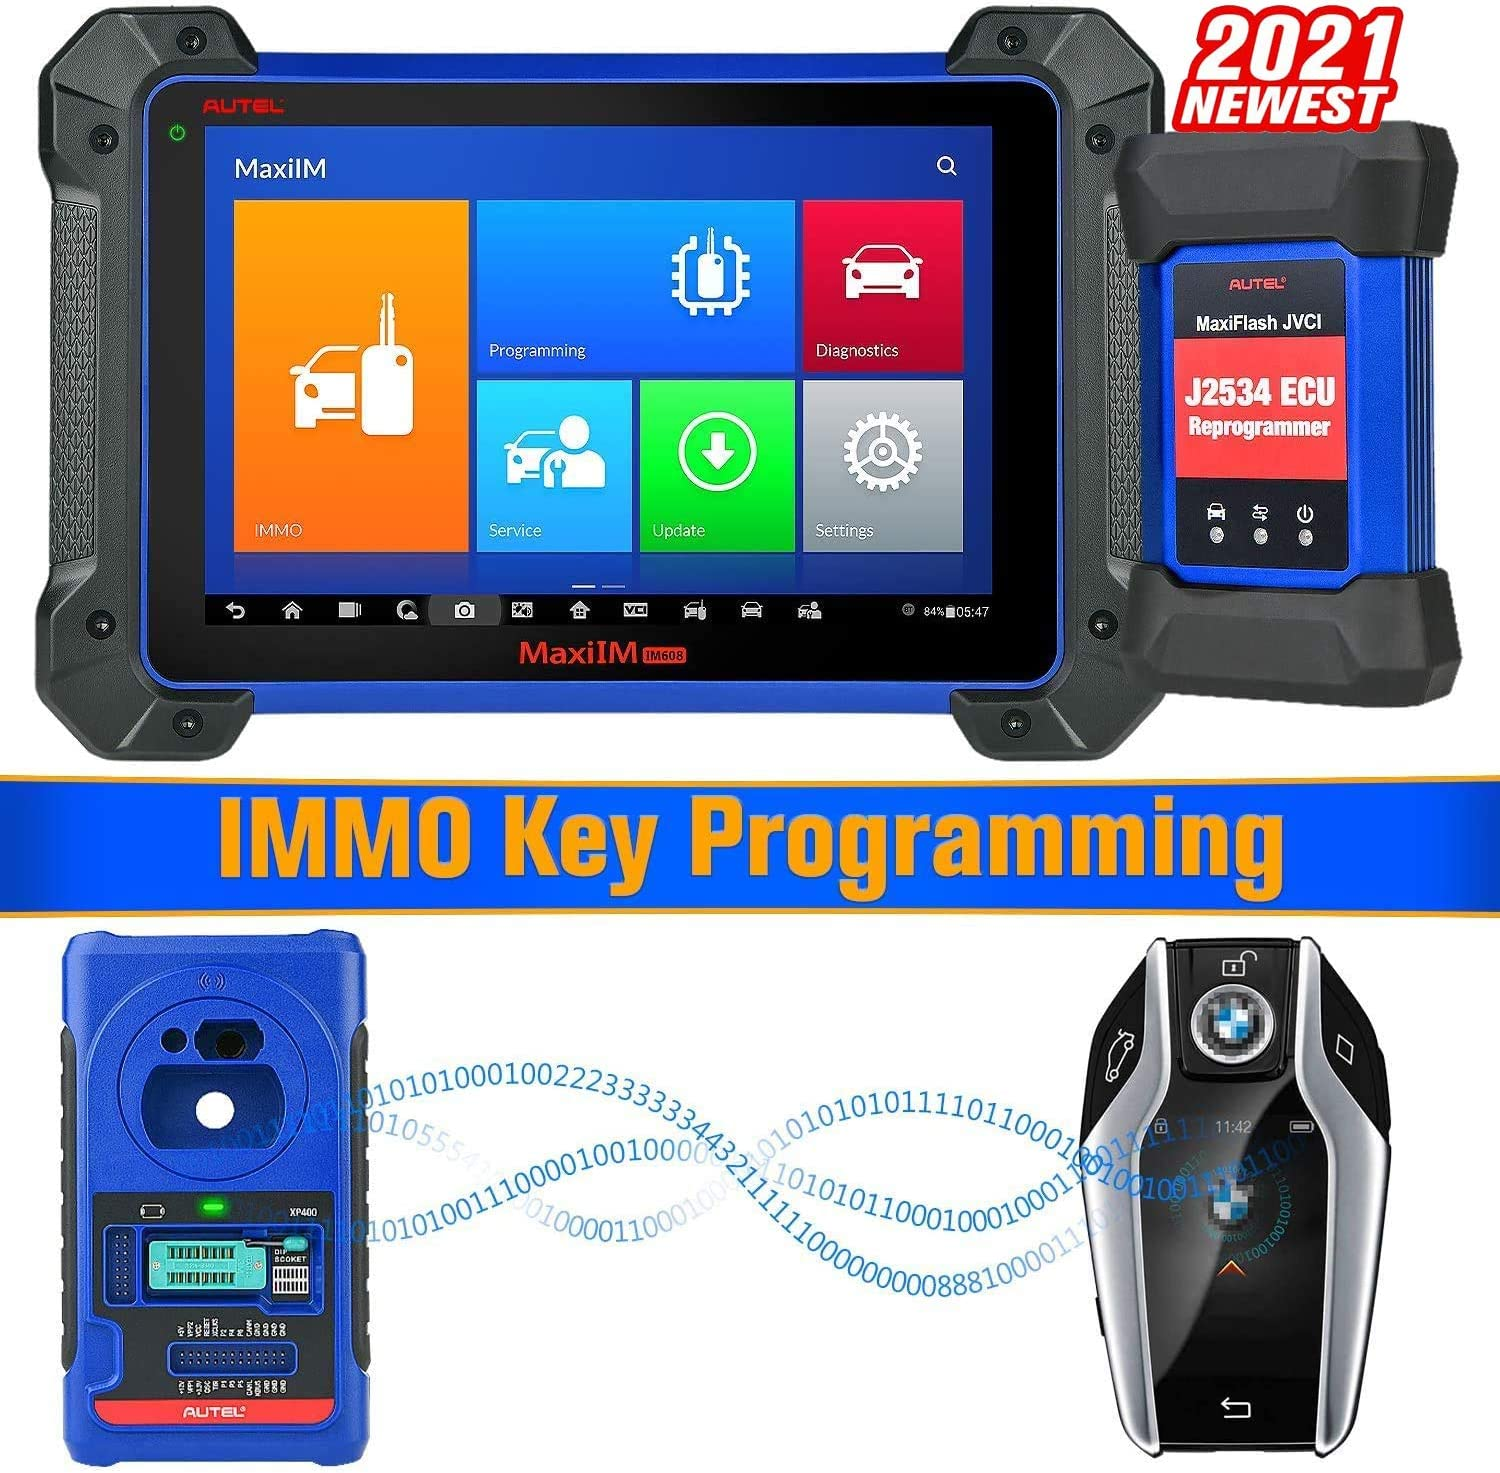 Amazon.com: Autel MaxiIM IM608 Advanced Key Programming Tool 2021 New Model  with IMMO & Key Programmer XP400 & J2534 Reprogrammer, Bi-Directional Scan  Tool & 30+ Services and All Systems Diagnosis (US ONLY):